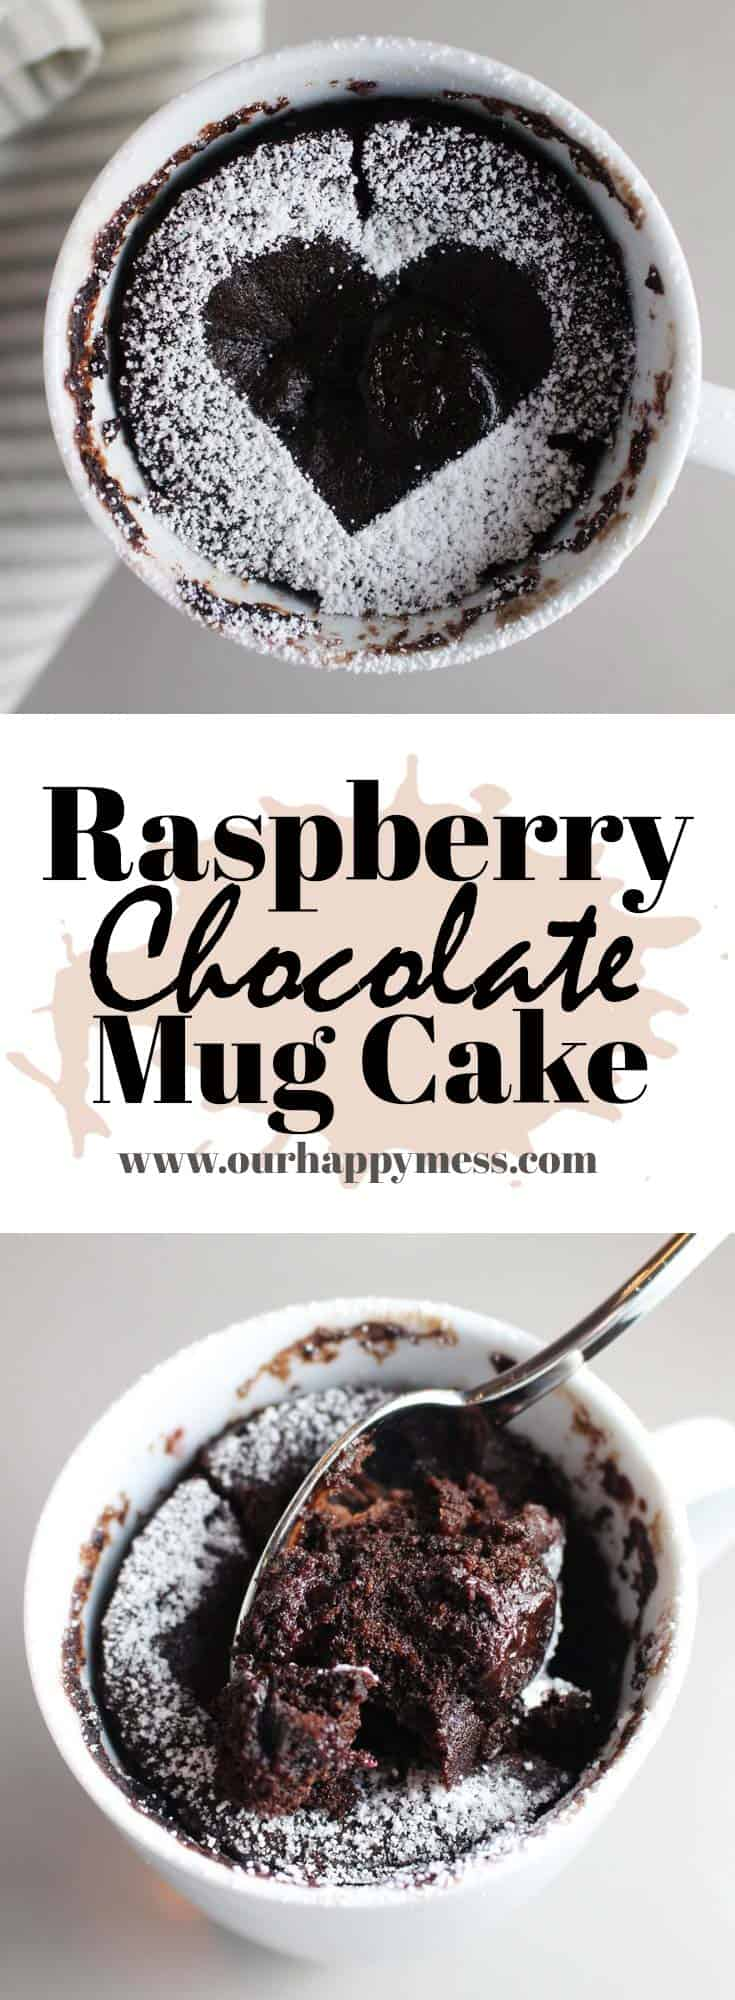 This chocolate raspberry mug cake takes about 5 minutes to make, start to finish. It is rich, dark, moist and perfect for satisfying a sudden chocolate craving. #easyrecipes #cake #chocolatecake